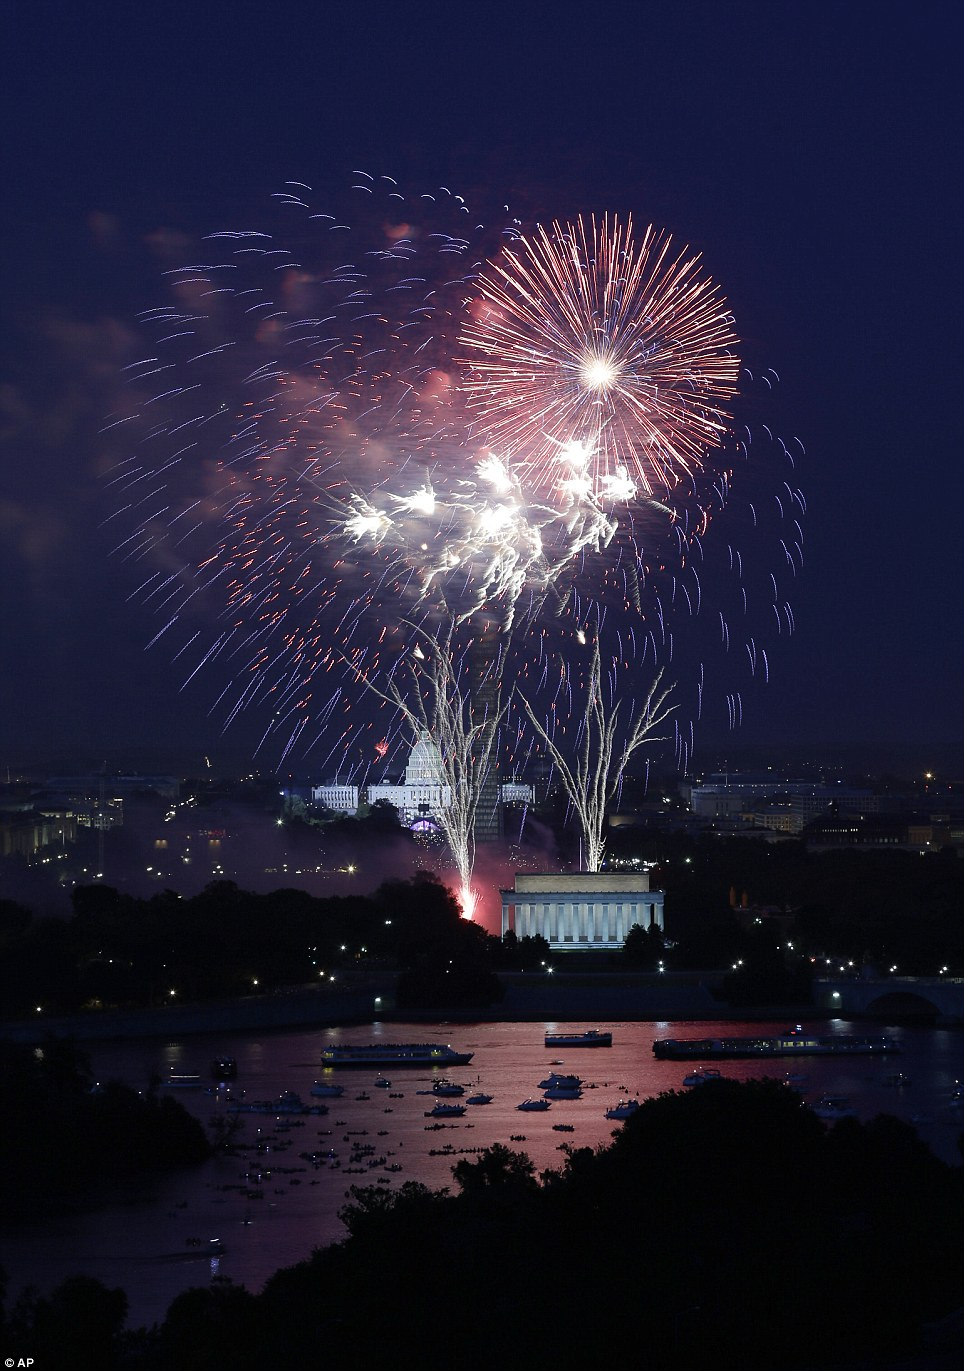 Fireworks light the sky over the U.S. Capitol, left, the Washington Monument and the Lincoln Memorial during Fourth of July celebrations, Thursday, July 4, 2013 in Washington